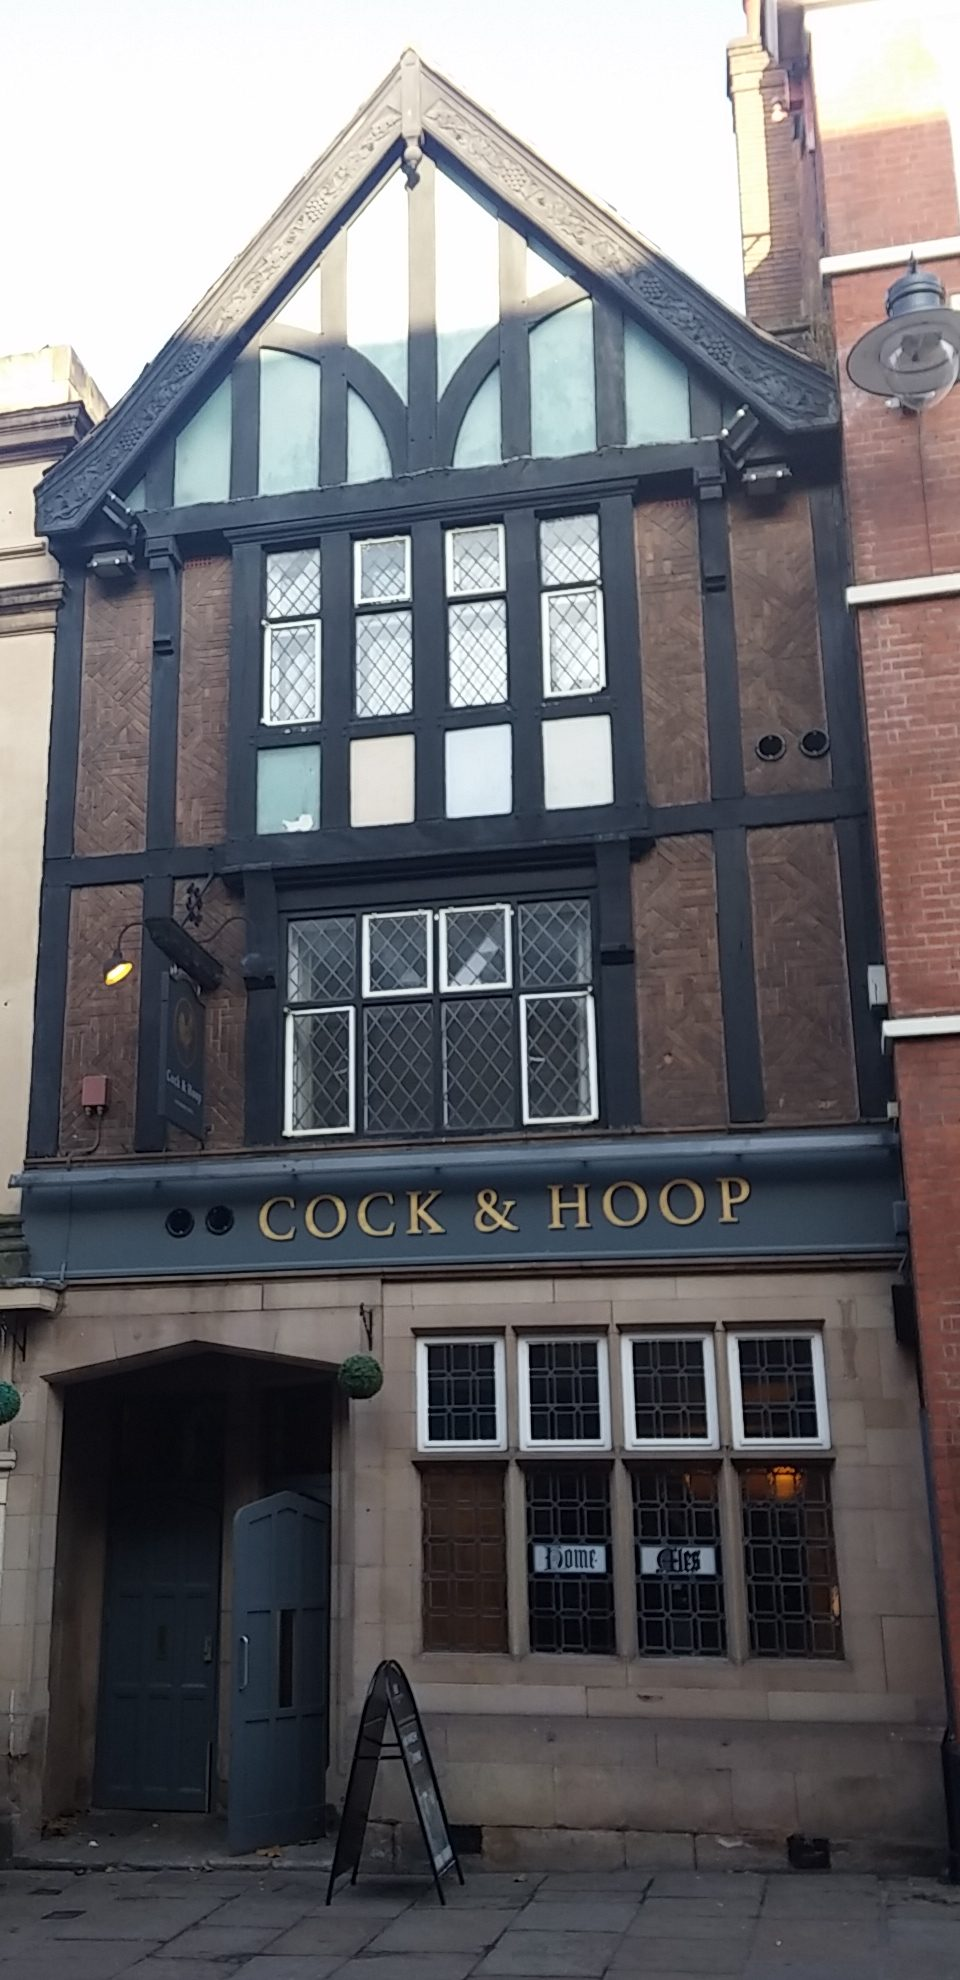 Pub review: Cock & Hoop, Nottingham